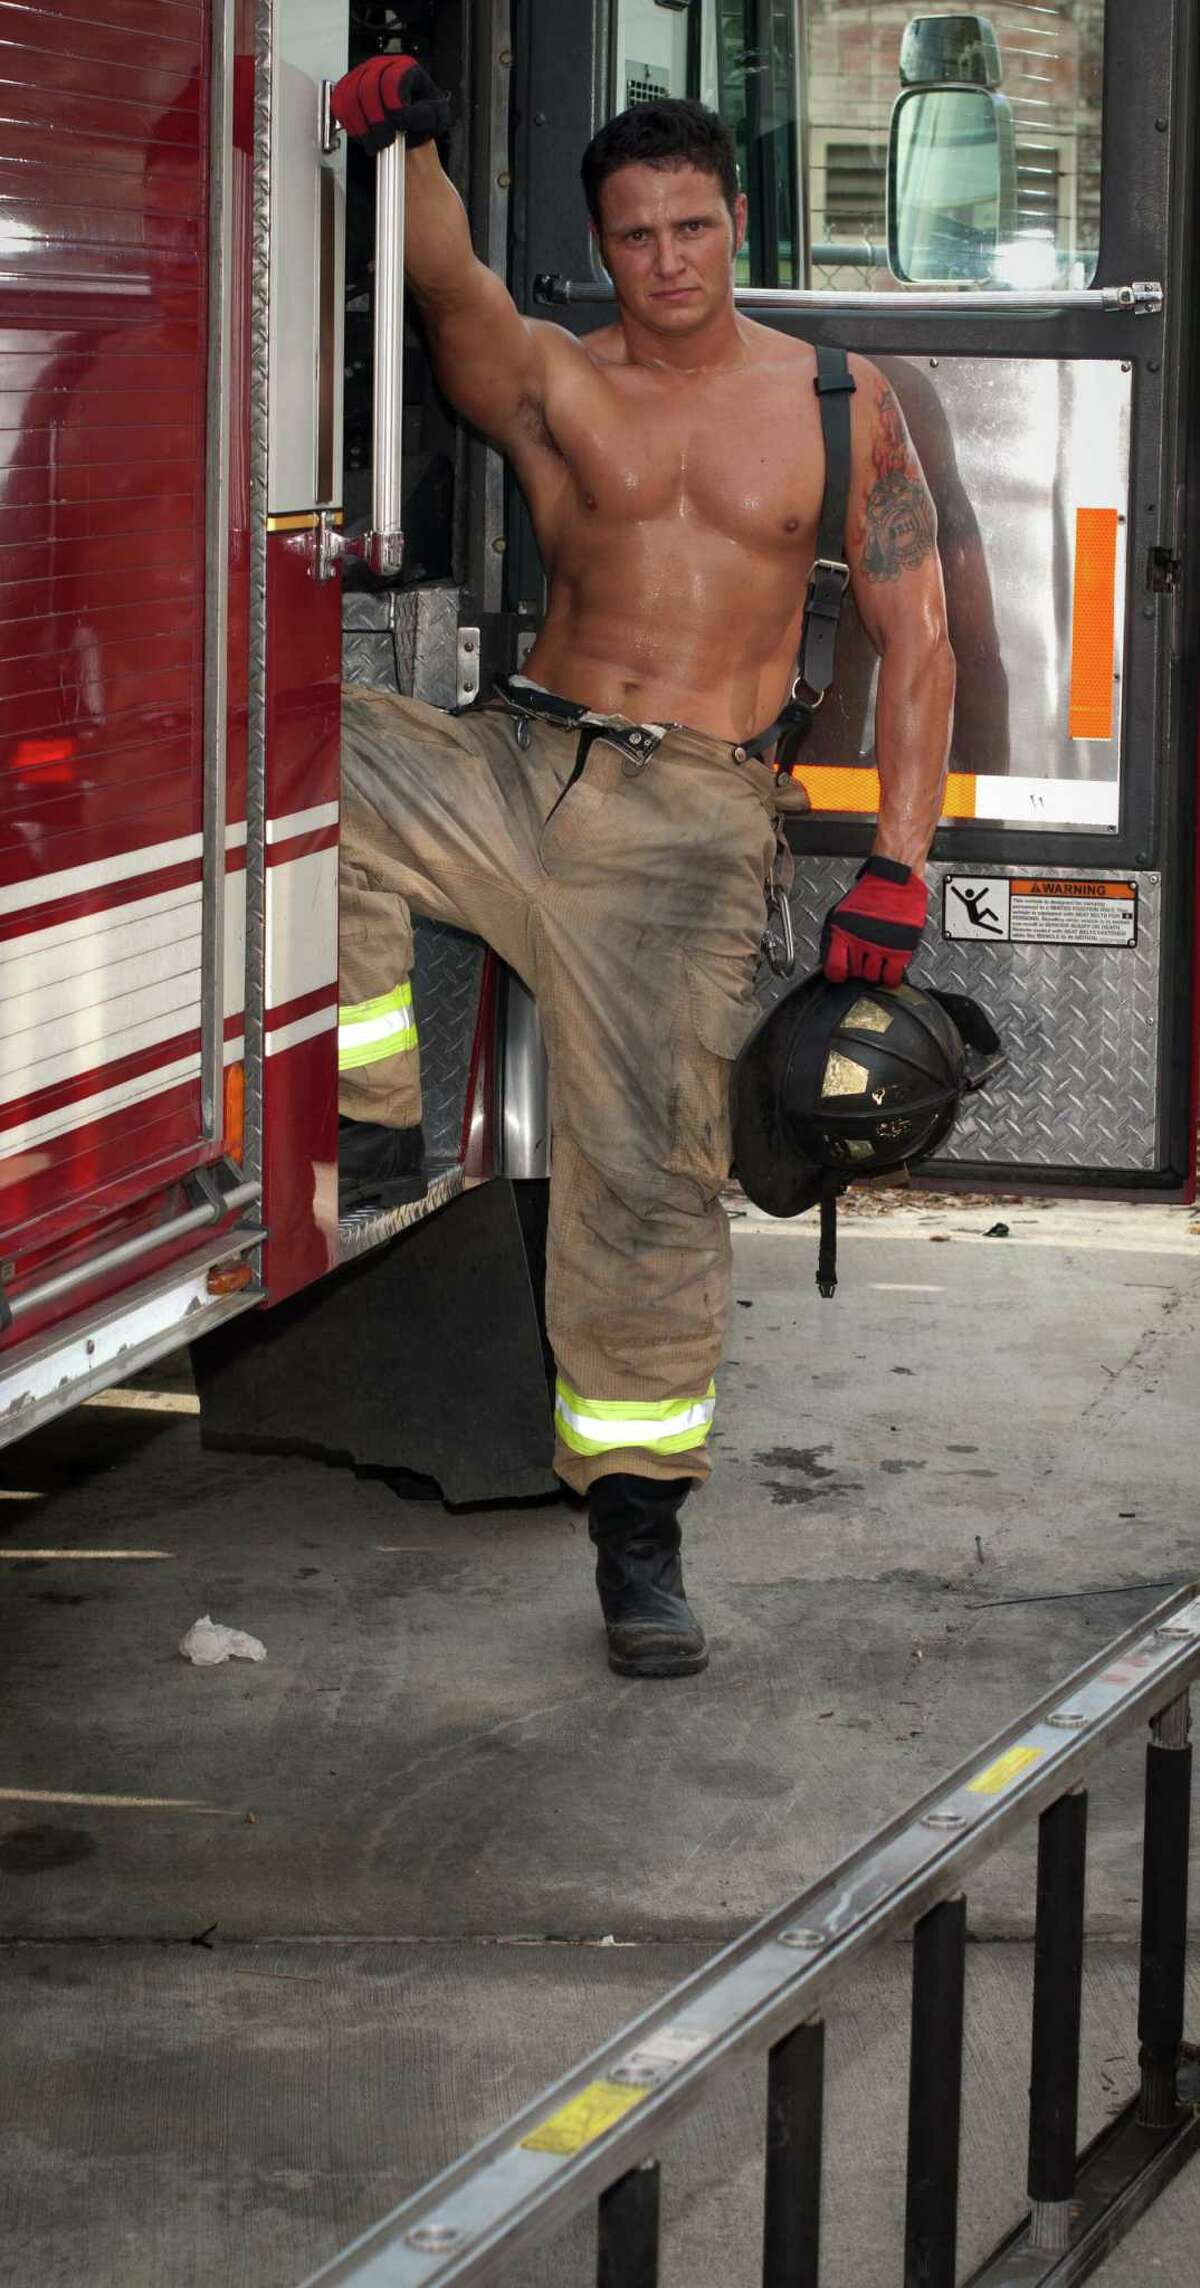 Ready for action A 2014 Houston firefighter calendar model is ready to ride.